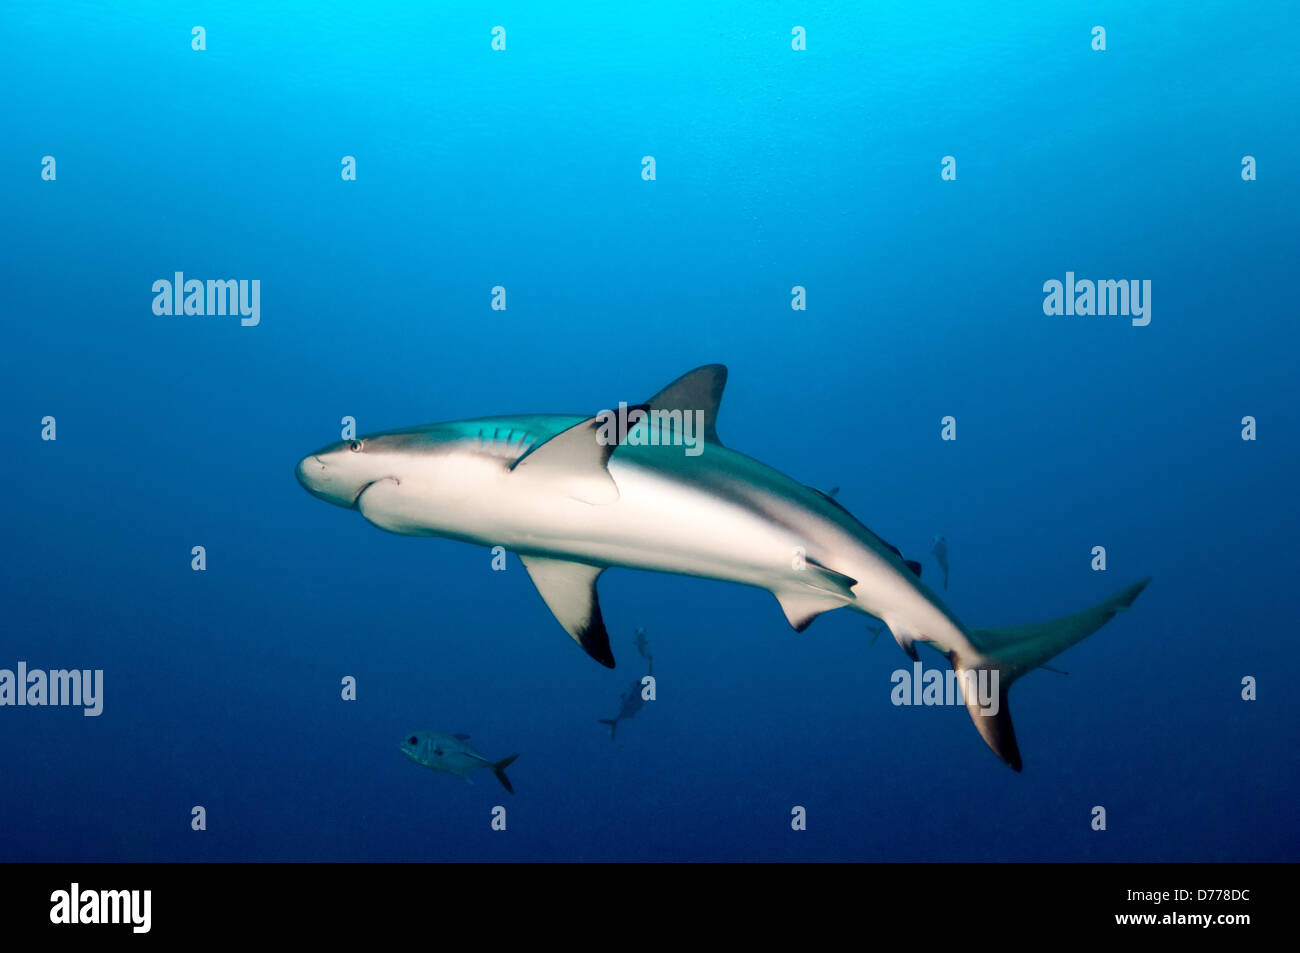 A Blacktip Shark prowls for prey in open water. - Stock Image